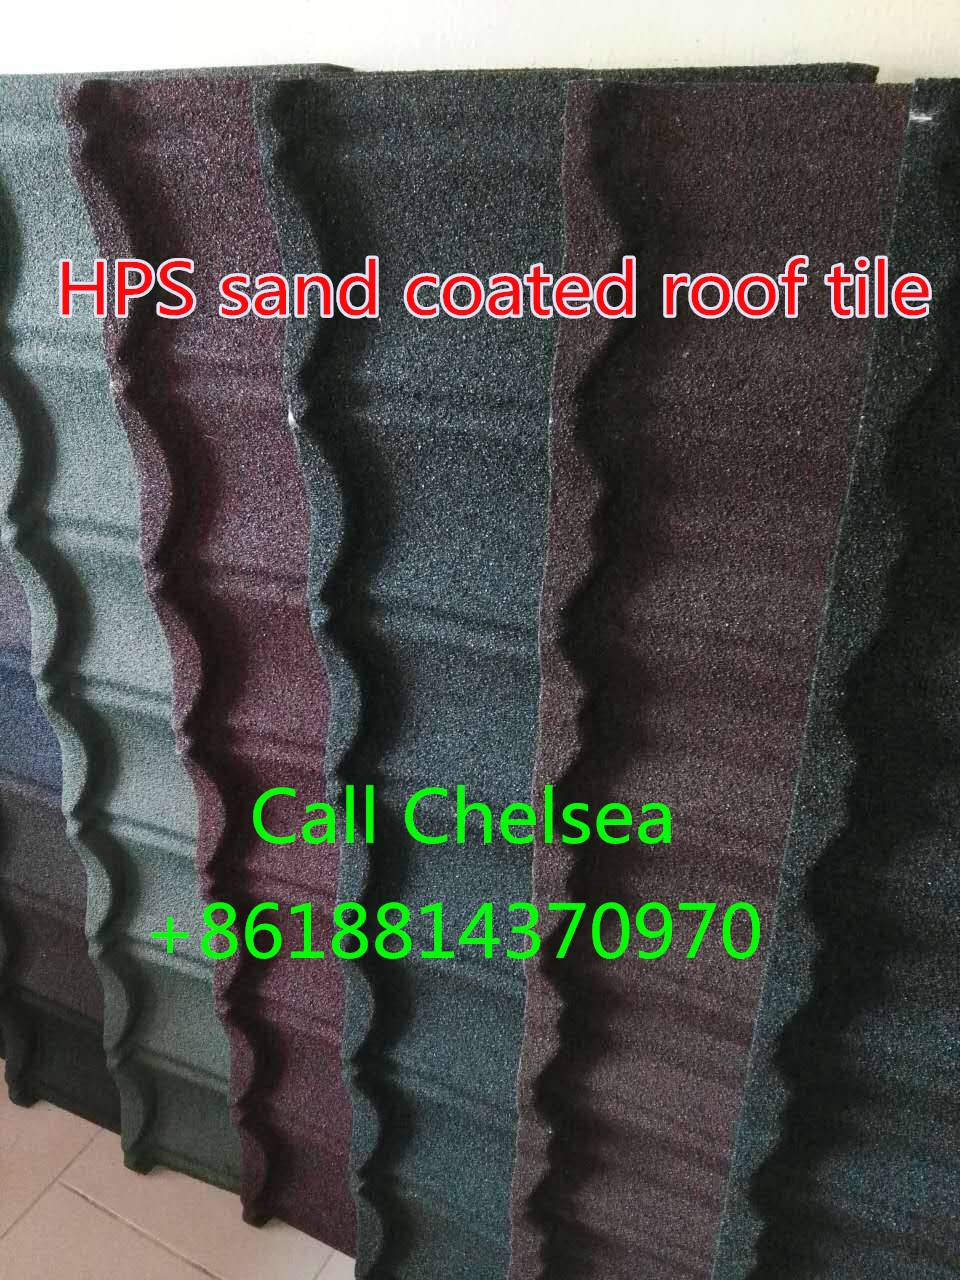 HPS brand Classic stone coated metal roof tiles in Abuja,Lagos and Onitsha warehouse